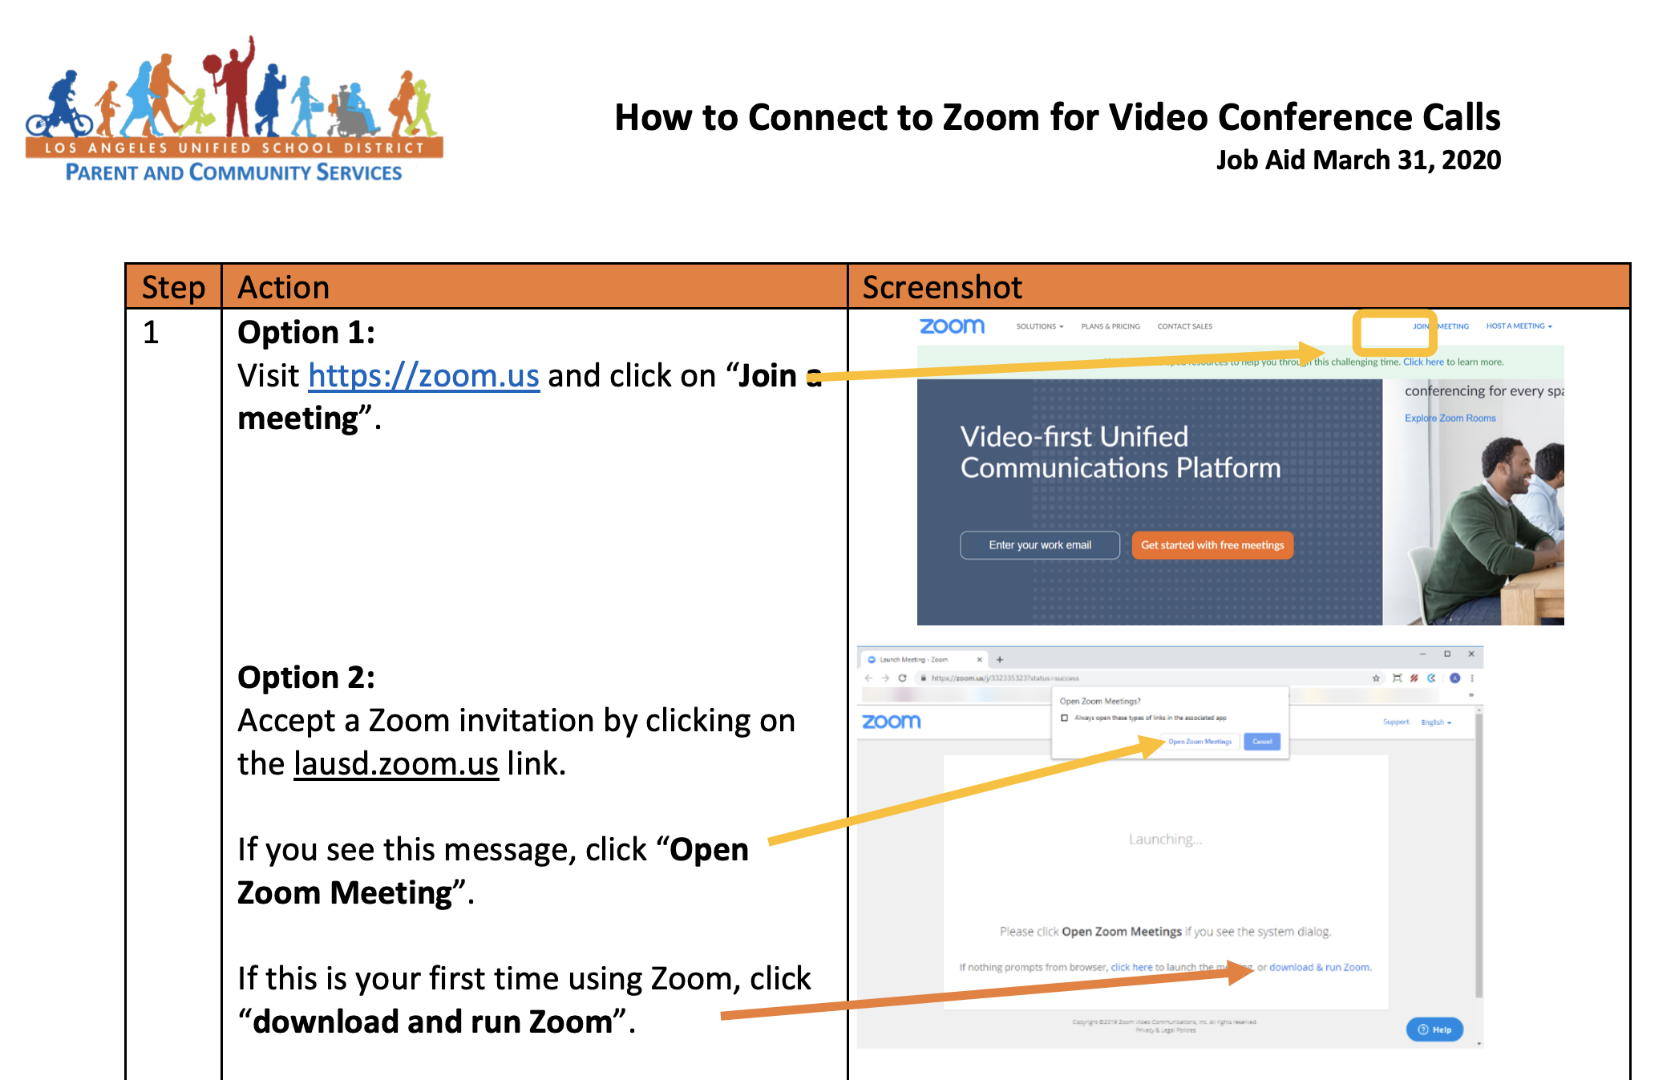 Guide on How to Connect to Zoom